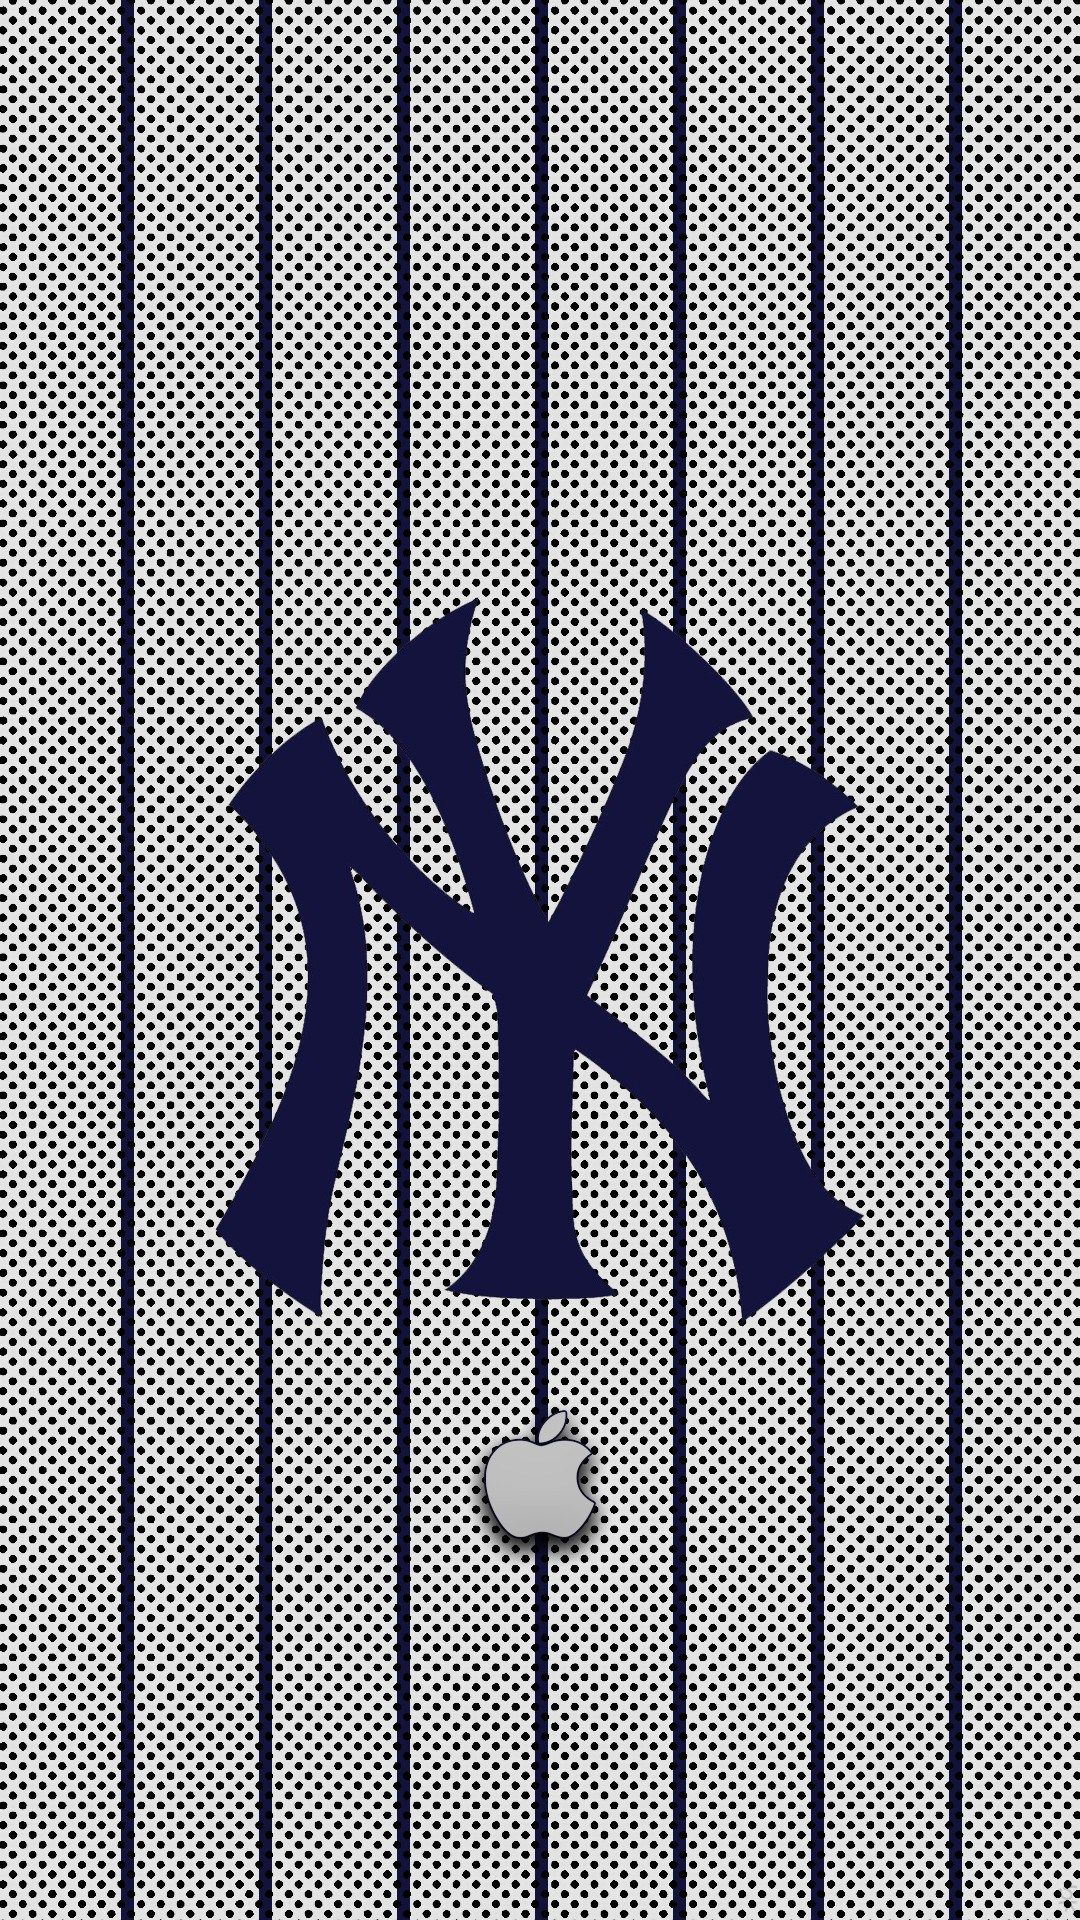 New York Yankees Wallpaper Iphone Beautiful New York Yankees Wallpaper Iphone Ny Yankees Logo Wallpapers W New York Yankees Baseball Wallpaper Mlb Wallpaper